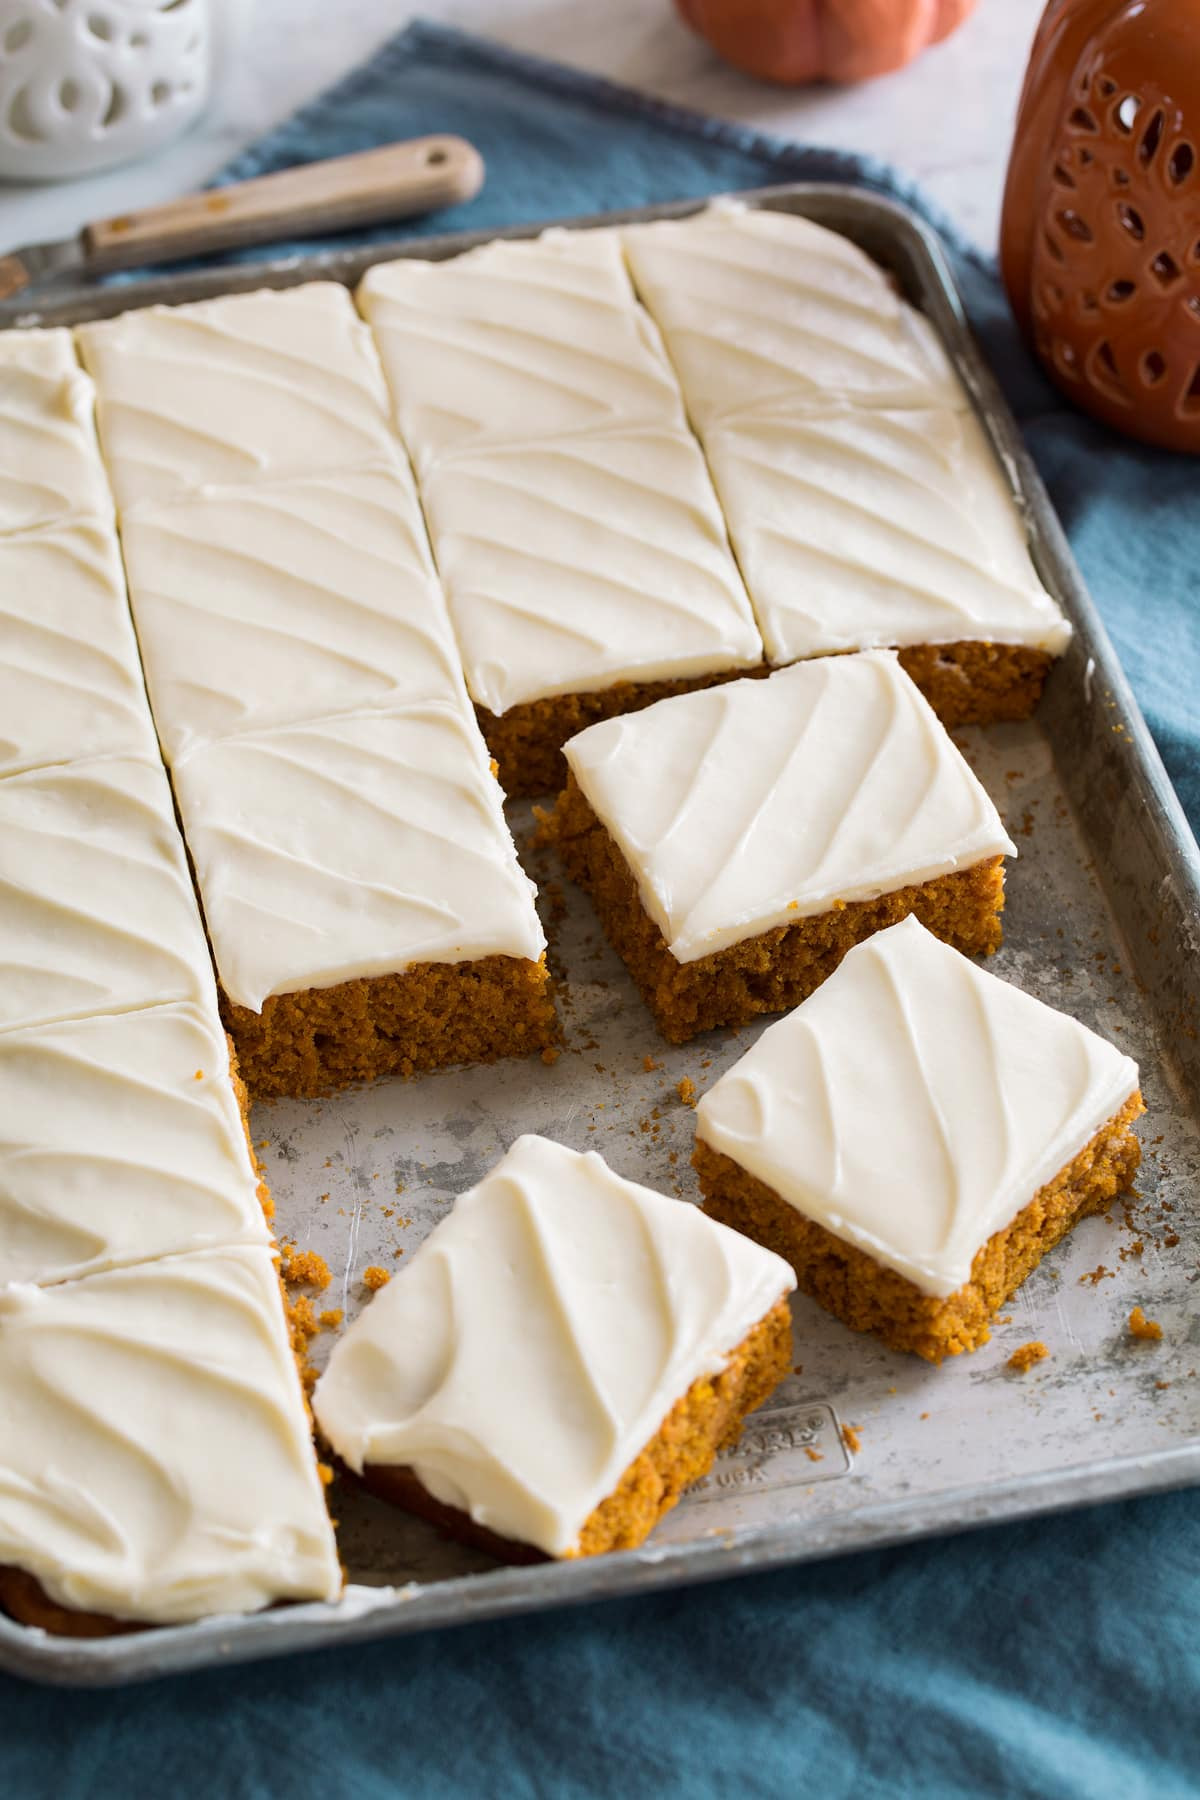 Pumpkin bars with cream cheese frosting cut into squares and shown on a metal sheet pan.